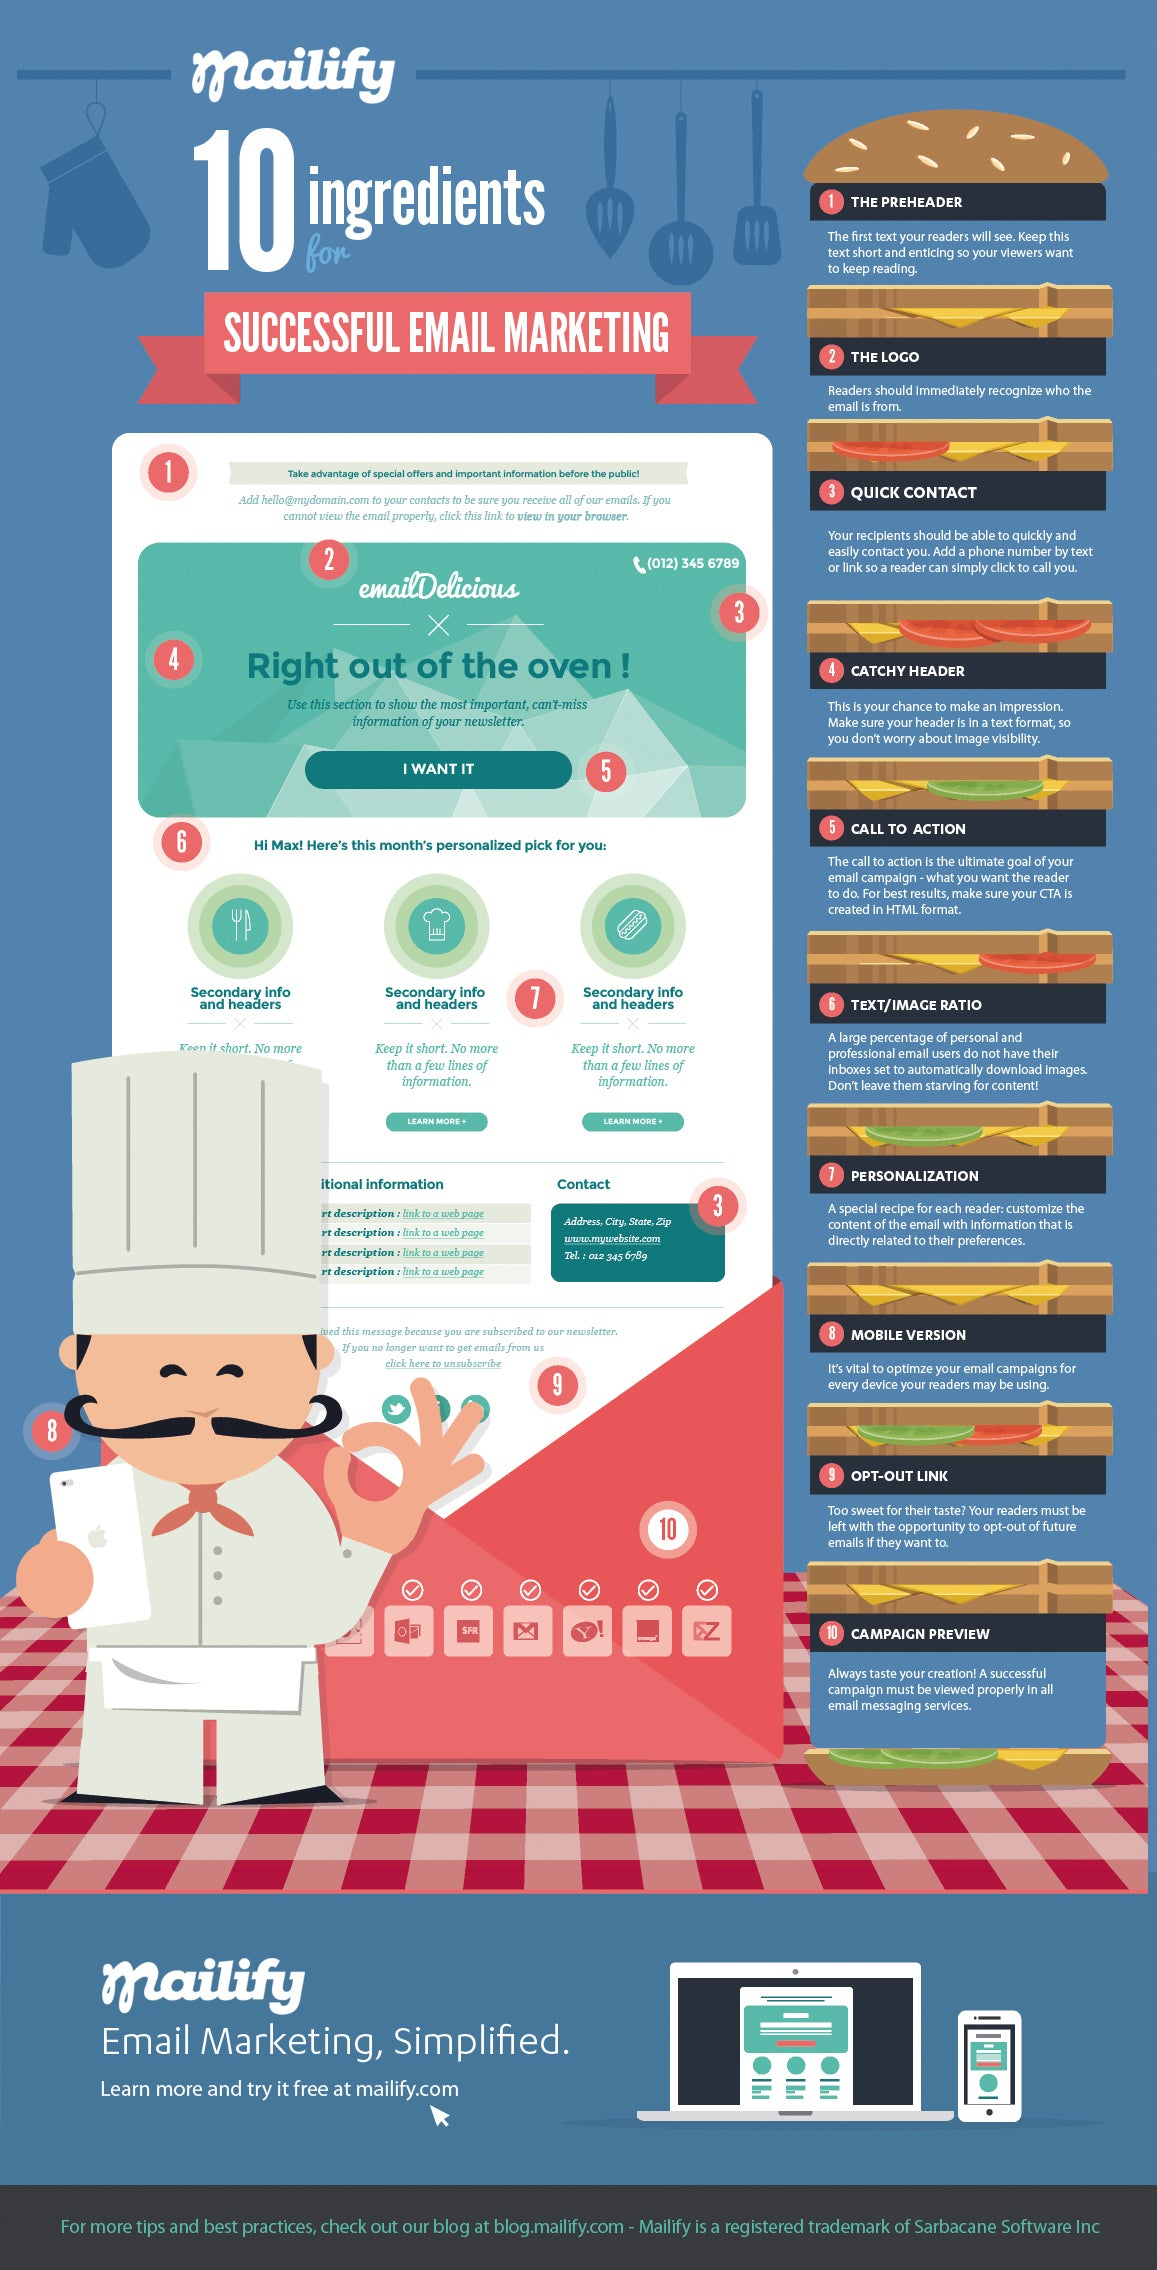 10 Ingredients for a Successful Email Marketing Campaign (Infographic)